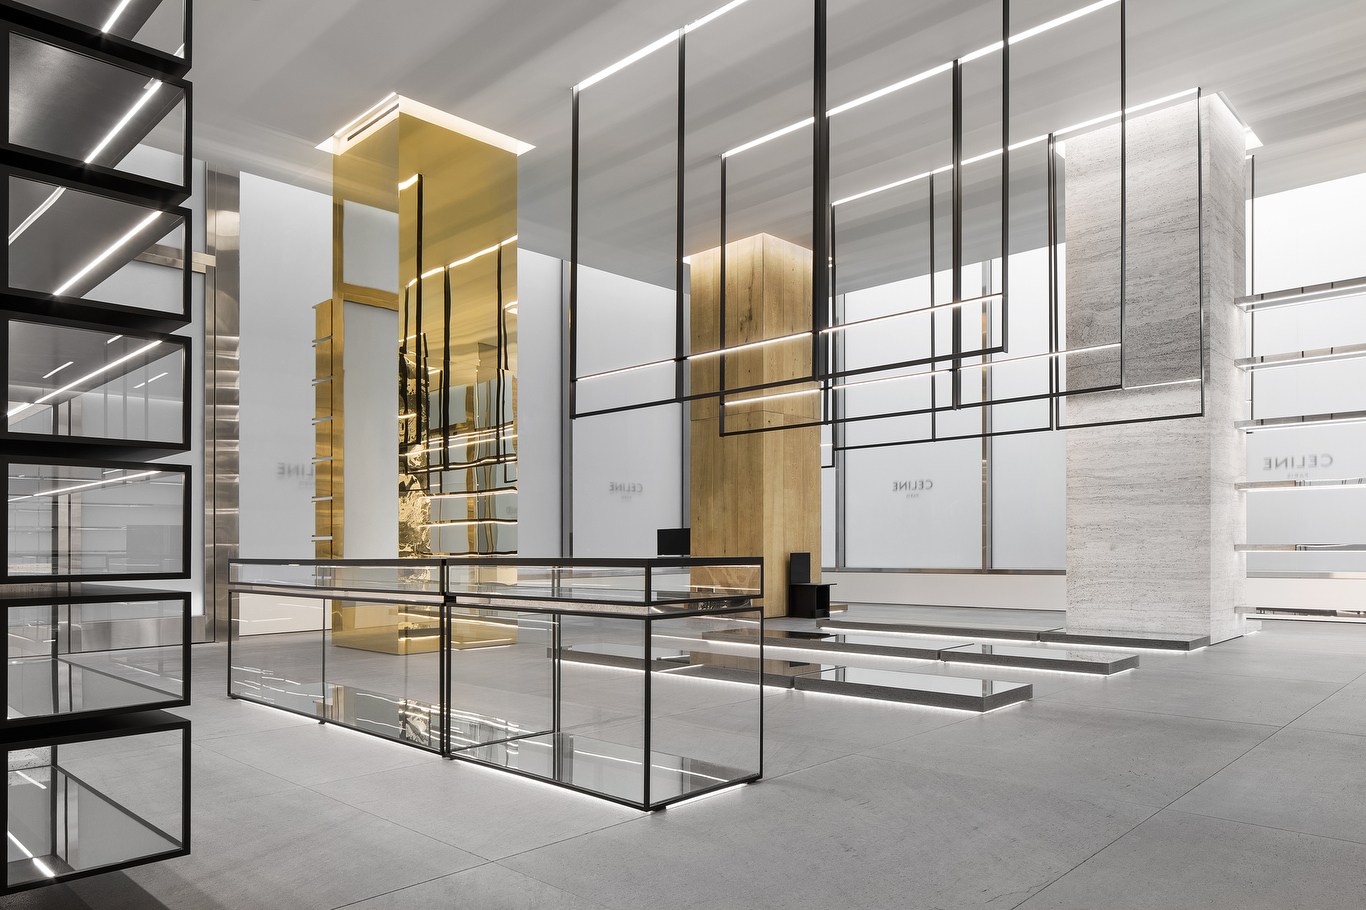 The new Celine flagship on Madison Avenue in Manhattan, designed by Hedi Slimane.